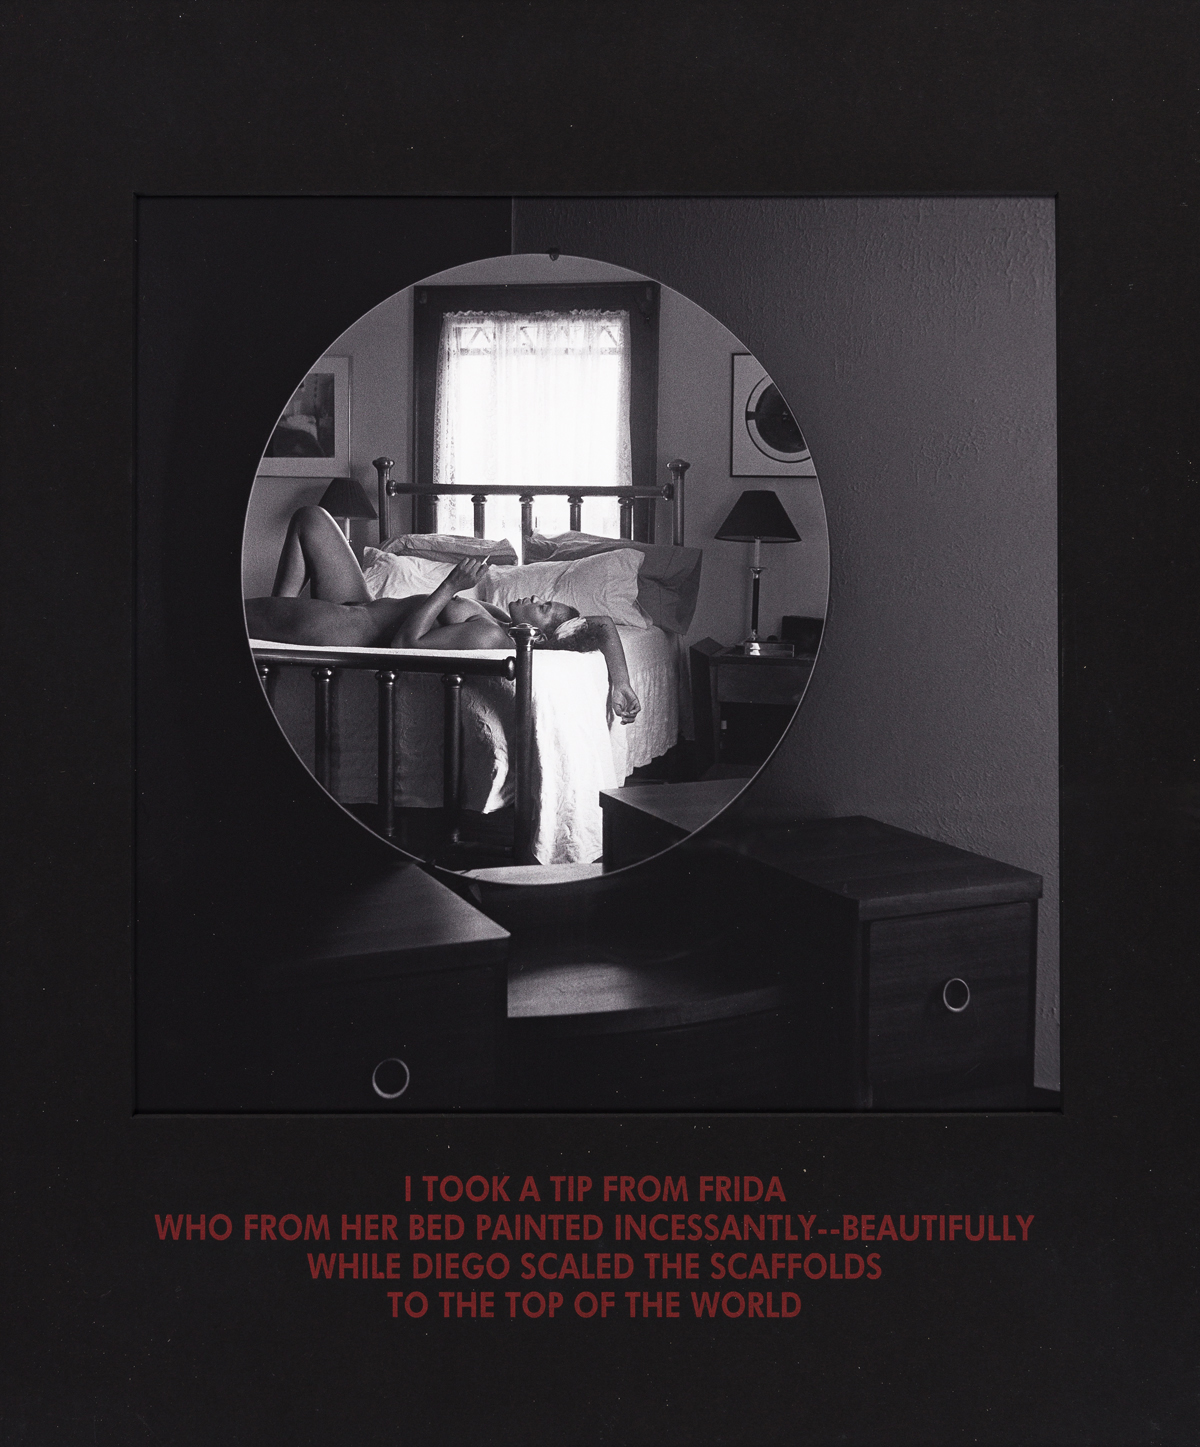 CARRIE MAE WEEMS (1953 - ) I Took a Tip from Frida who from her Bed Painted Incessantly-Beautifully....